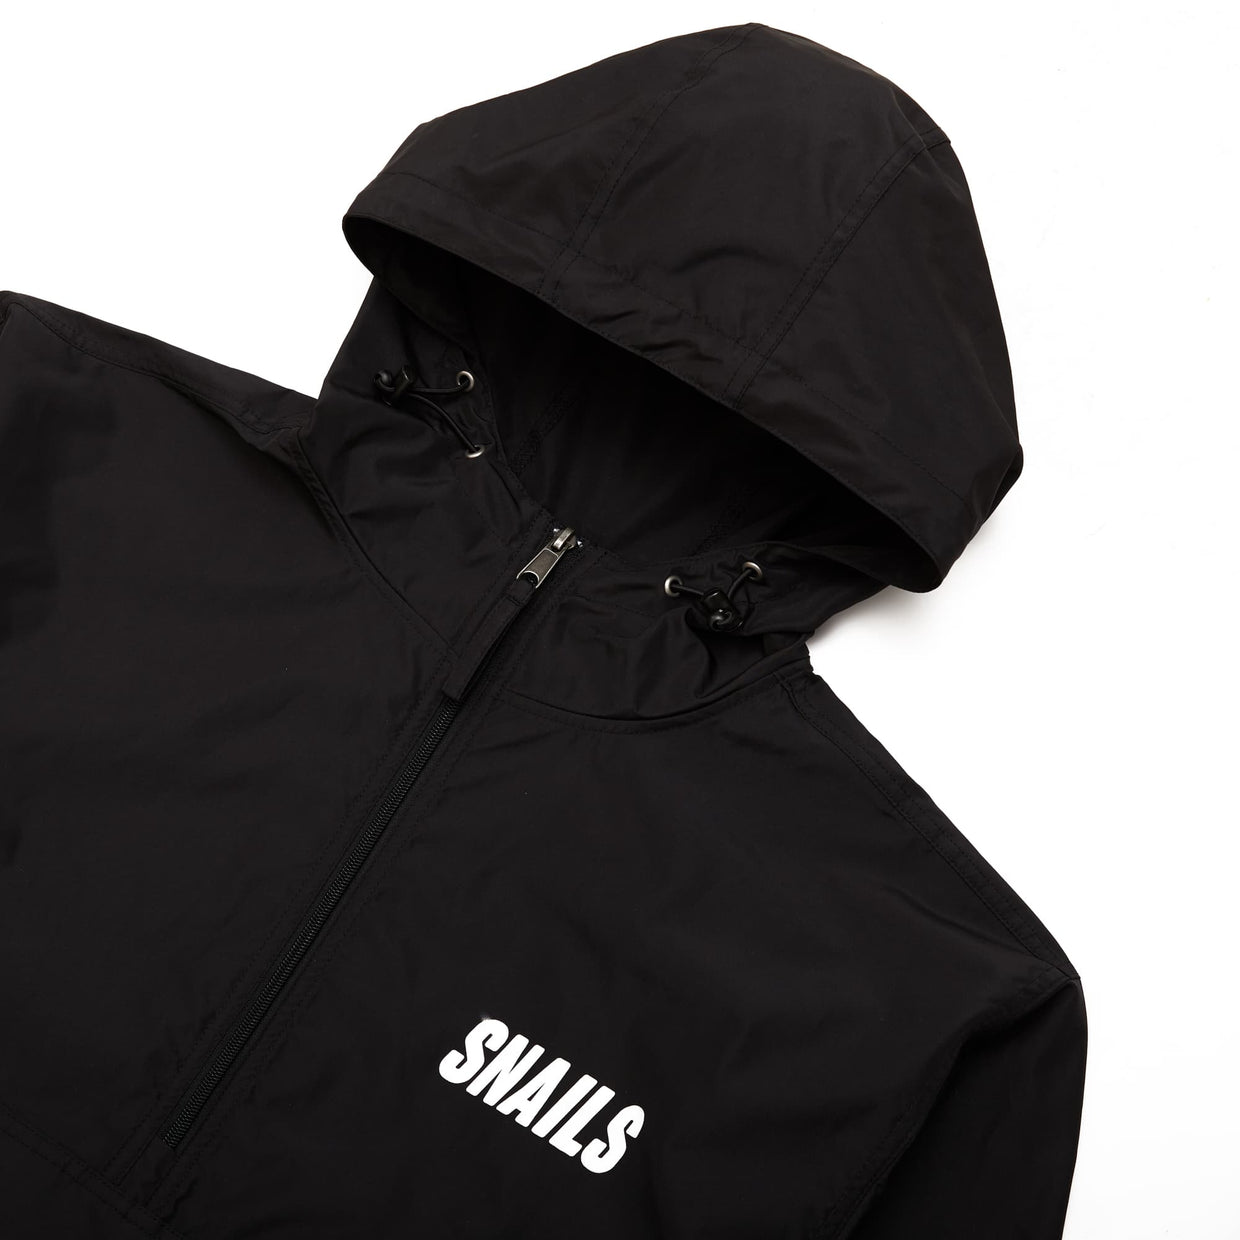 Snails x Champion Packable Anorak Jacket